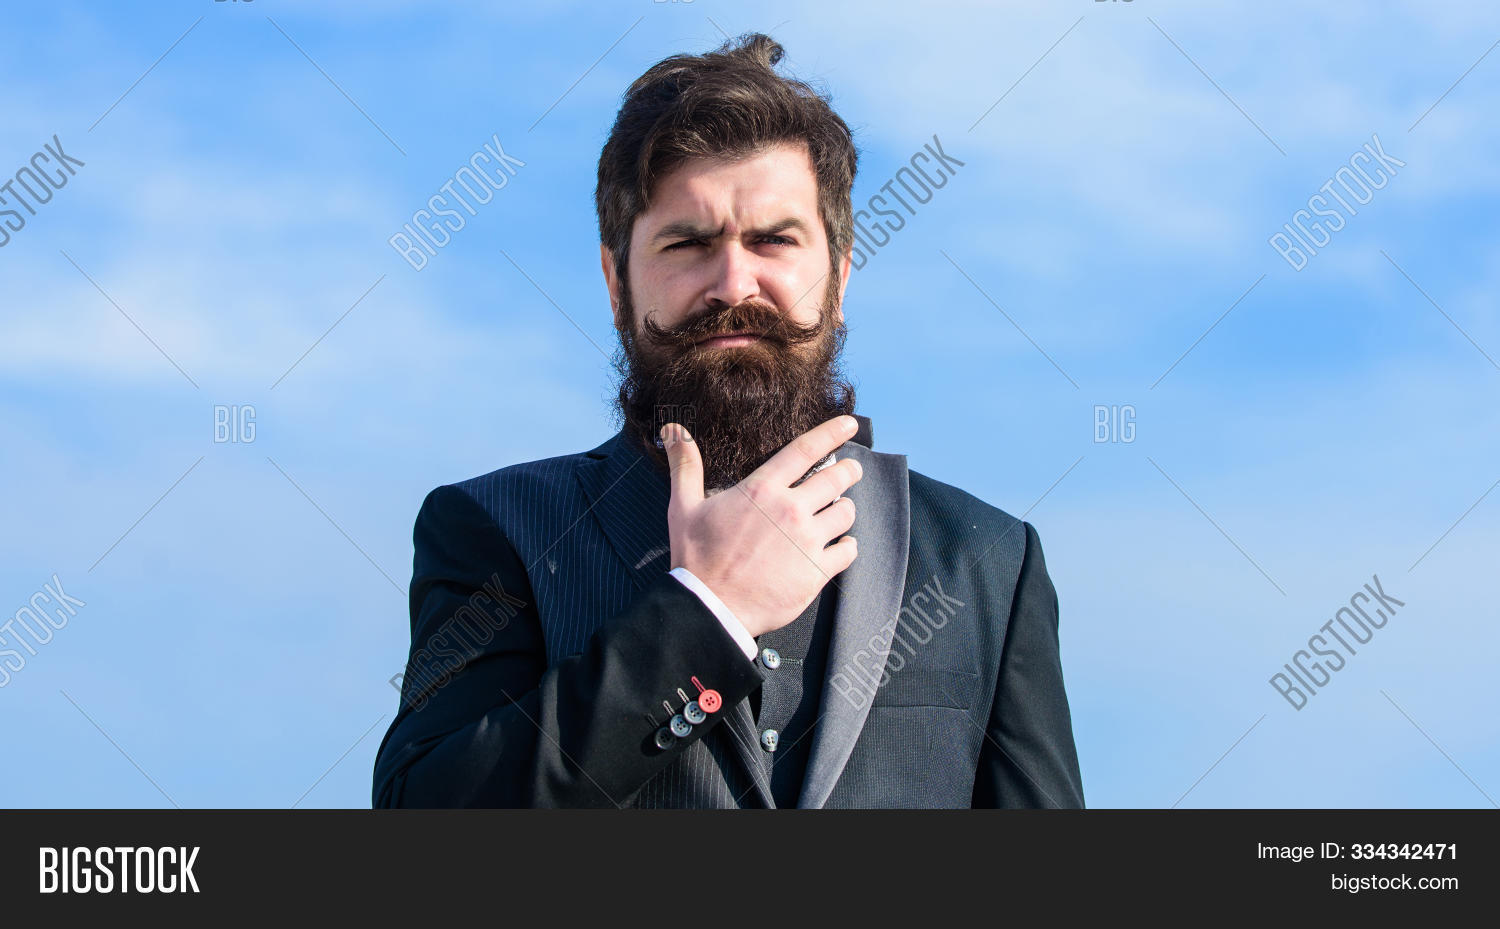 Vintage style long beard. Facial hair beard and mustache care. Beard fashion trend. Invest in stylish appearance. Grow thick beard fast. Man bearded hipster wear formal suit blue sky background